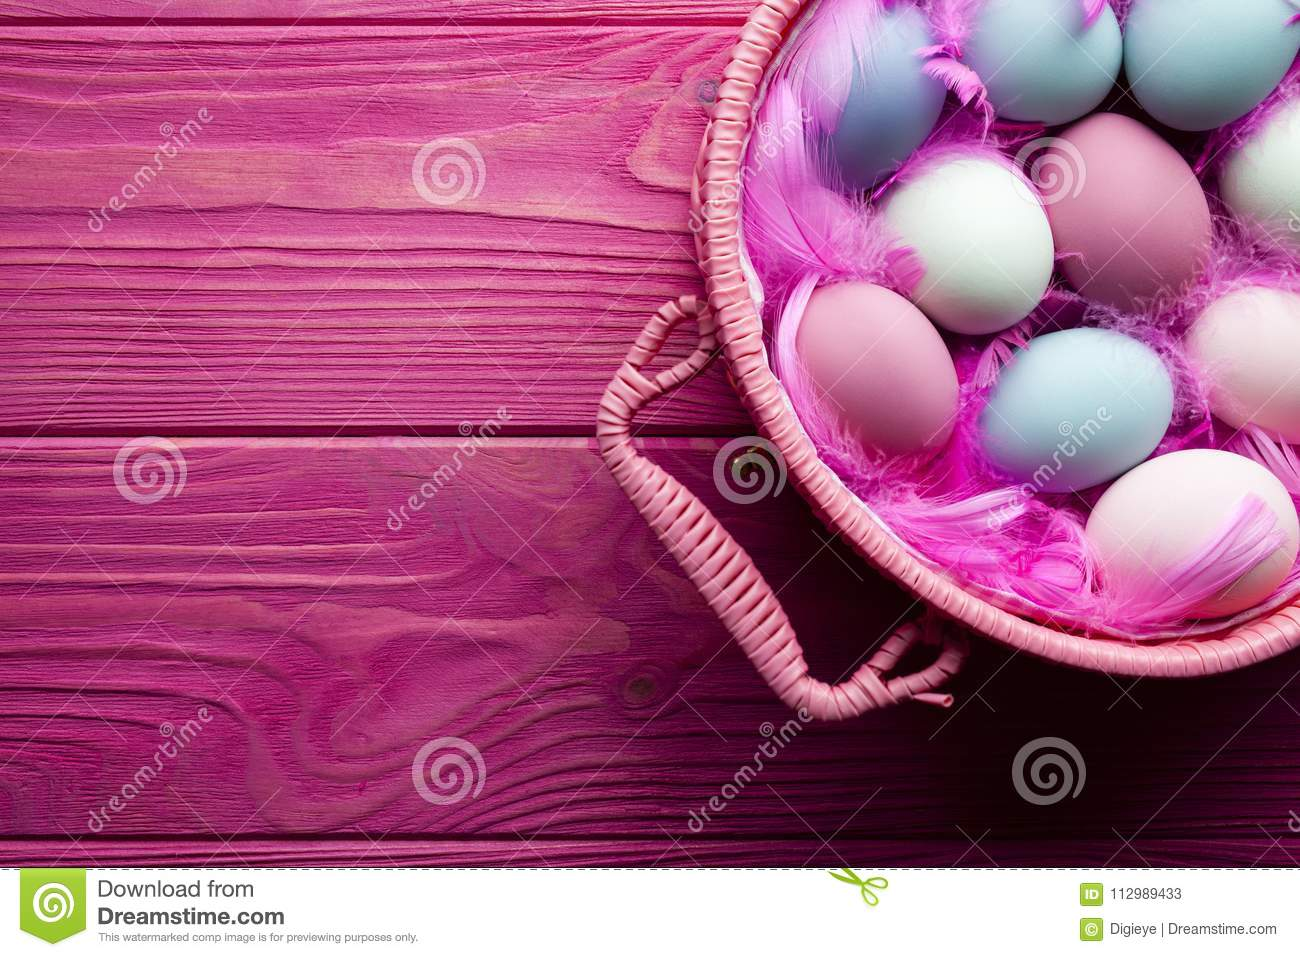 Colored Easter eggs and feathers in basket on pink background